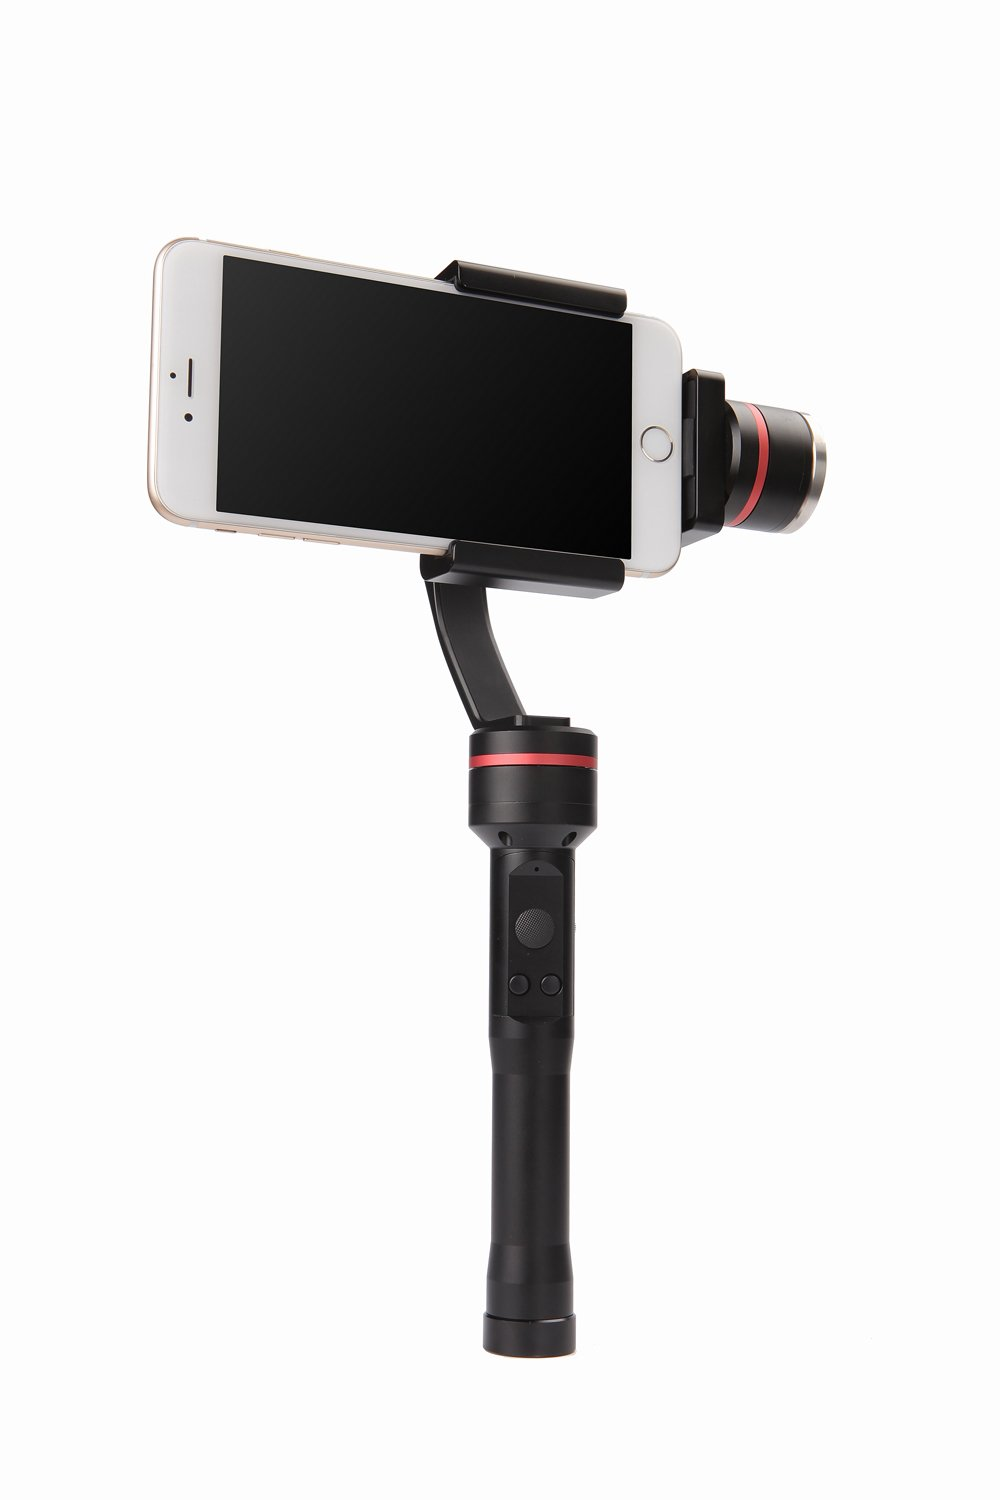 Foneda Phone Gimbal Stabilizer With Smart Portrait Mode And bluetooth 3-Axis Motorized Handheld Gimbal Active Stabilizer For Smartphone